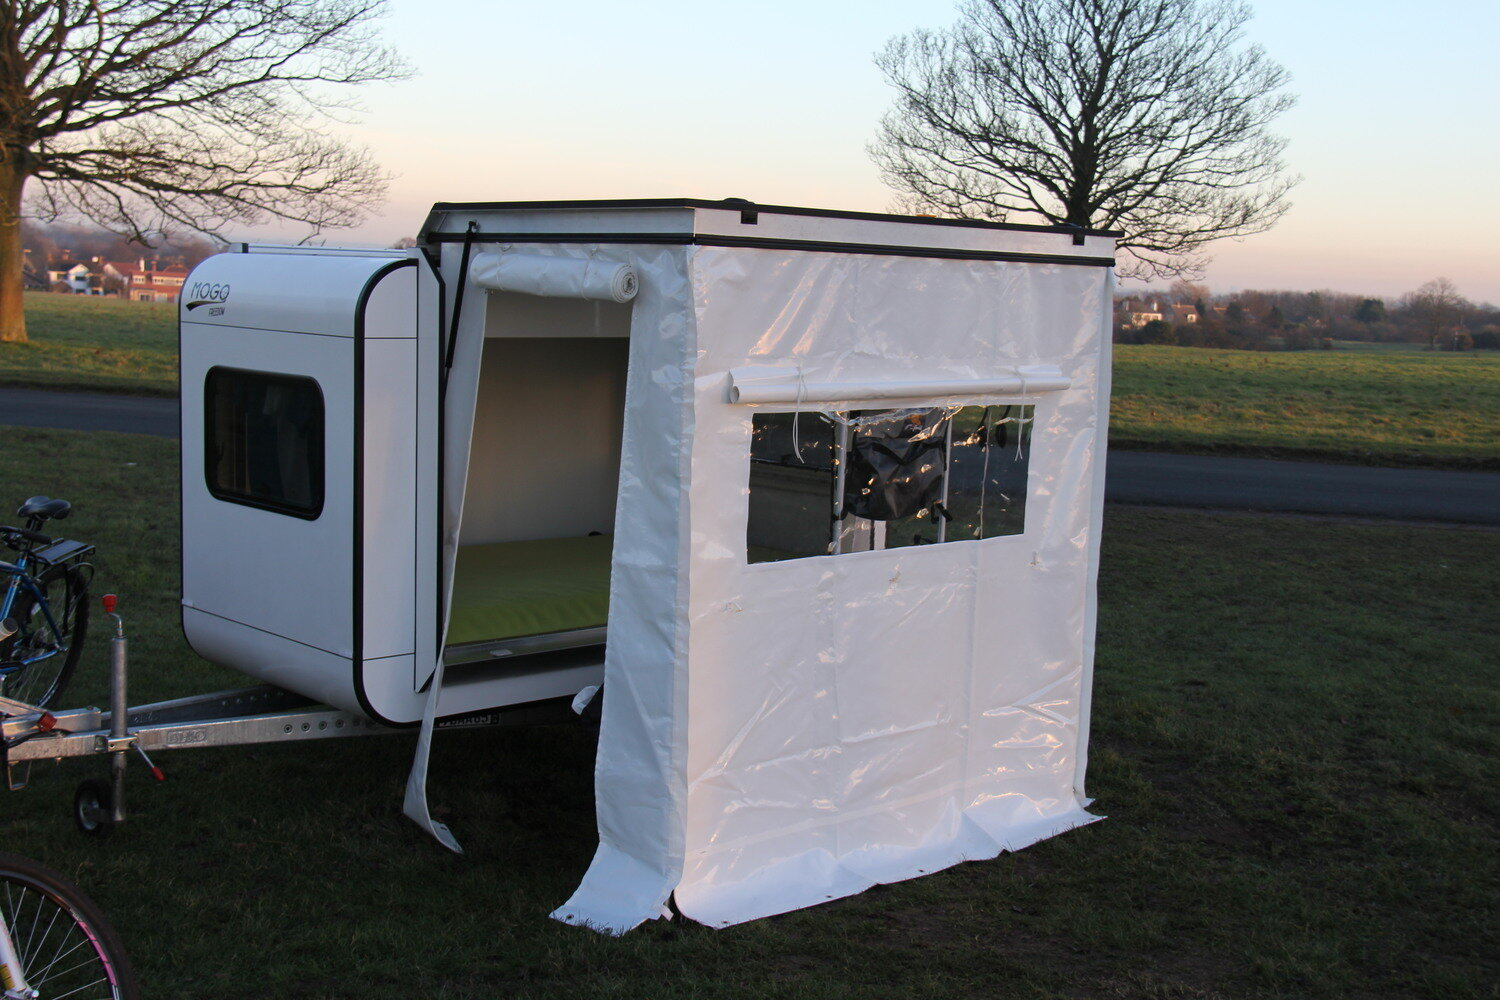 mogo freedom travel trailer trailer with gazebo humble homes - Tiny Camping Trailers